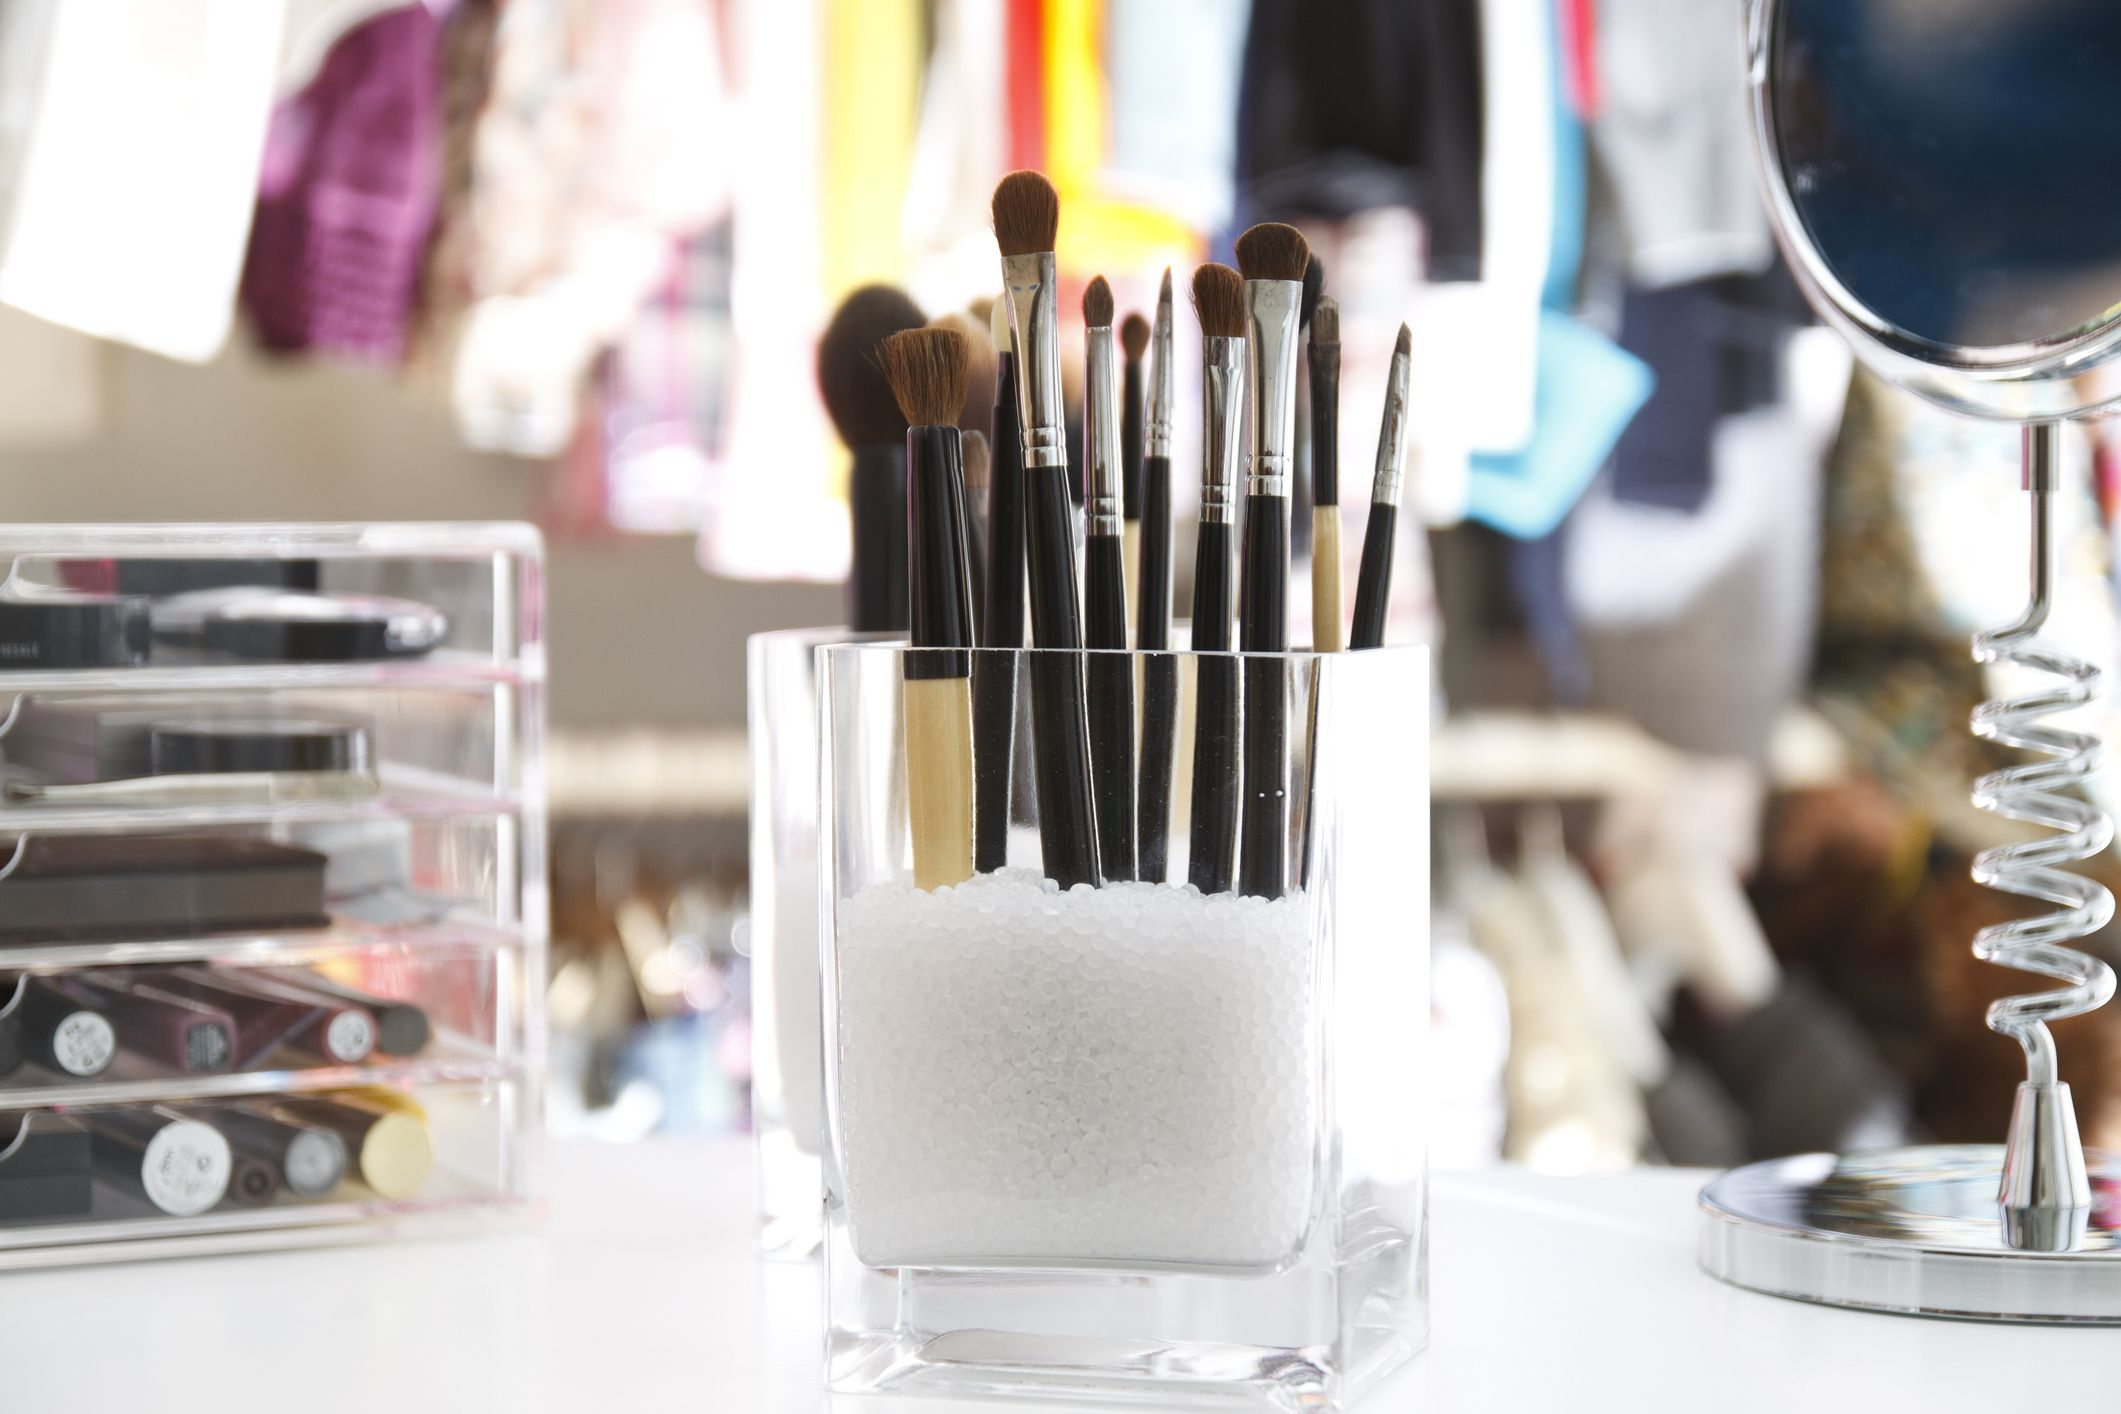 15 Creative Makeup Storage Ideas to Clear the Clutter Once and for All